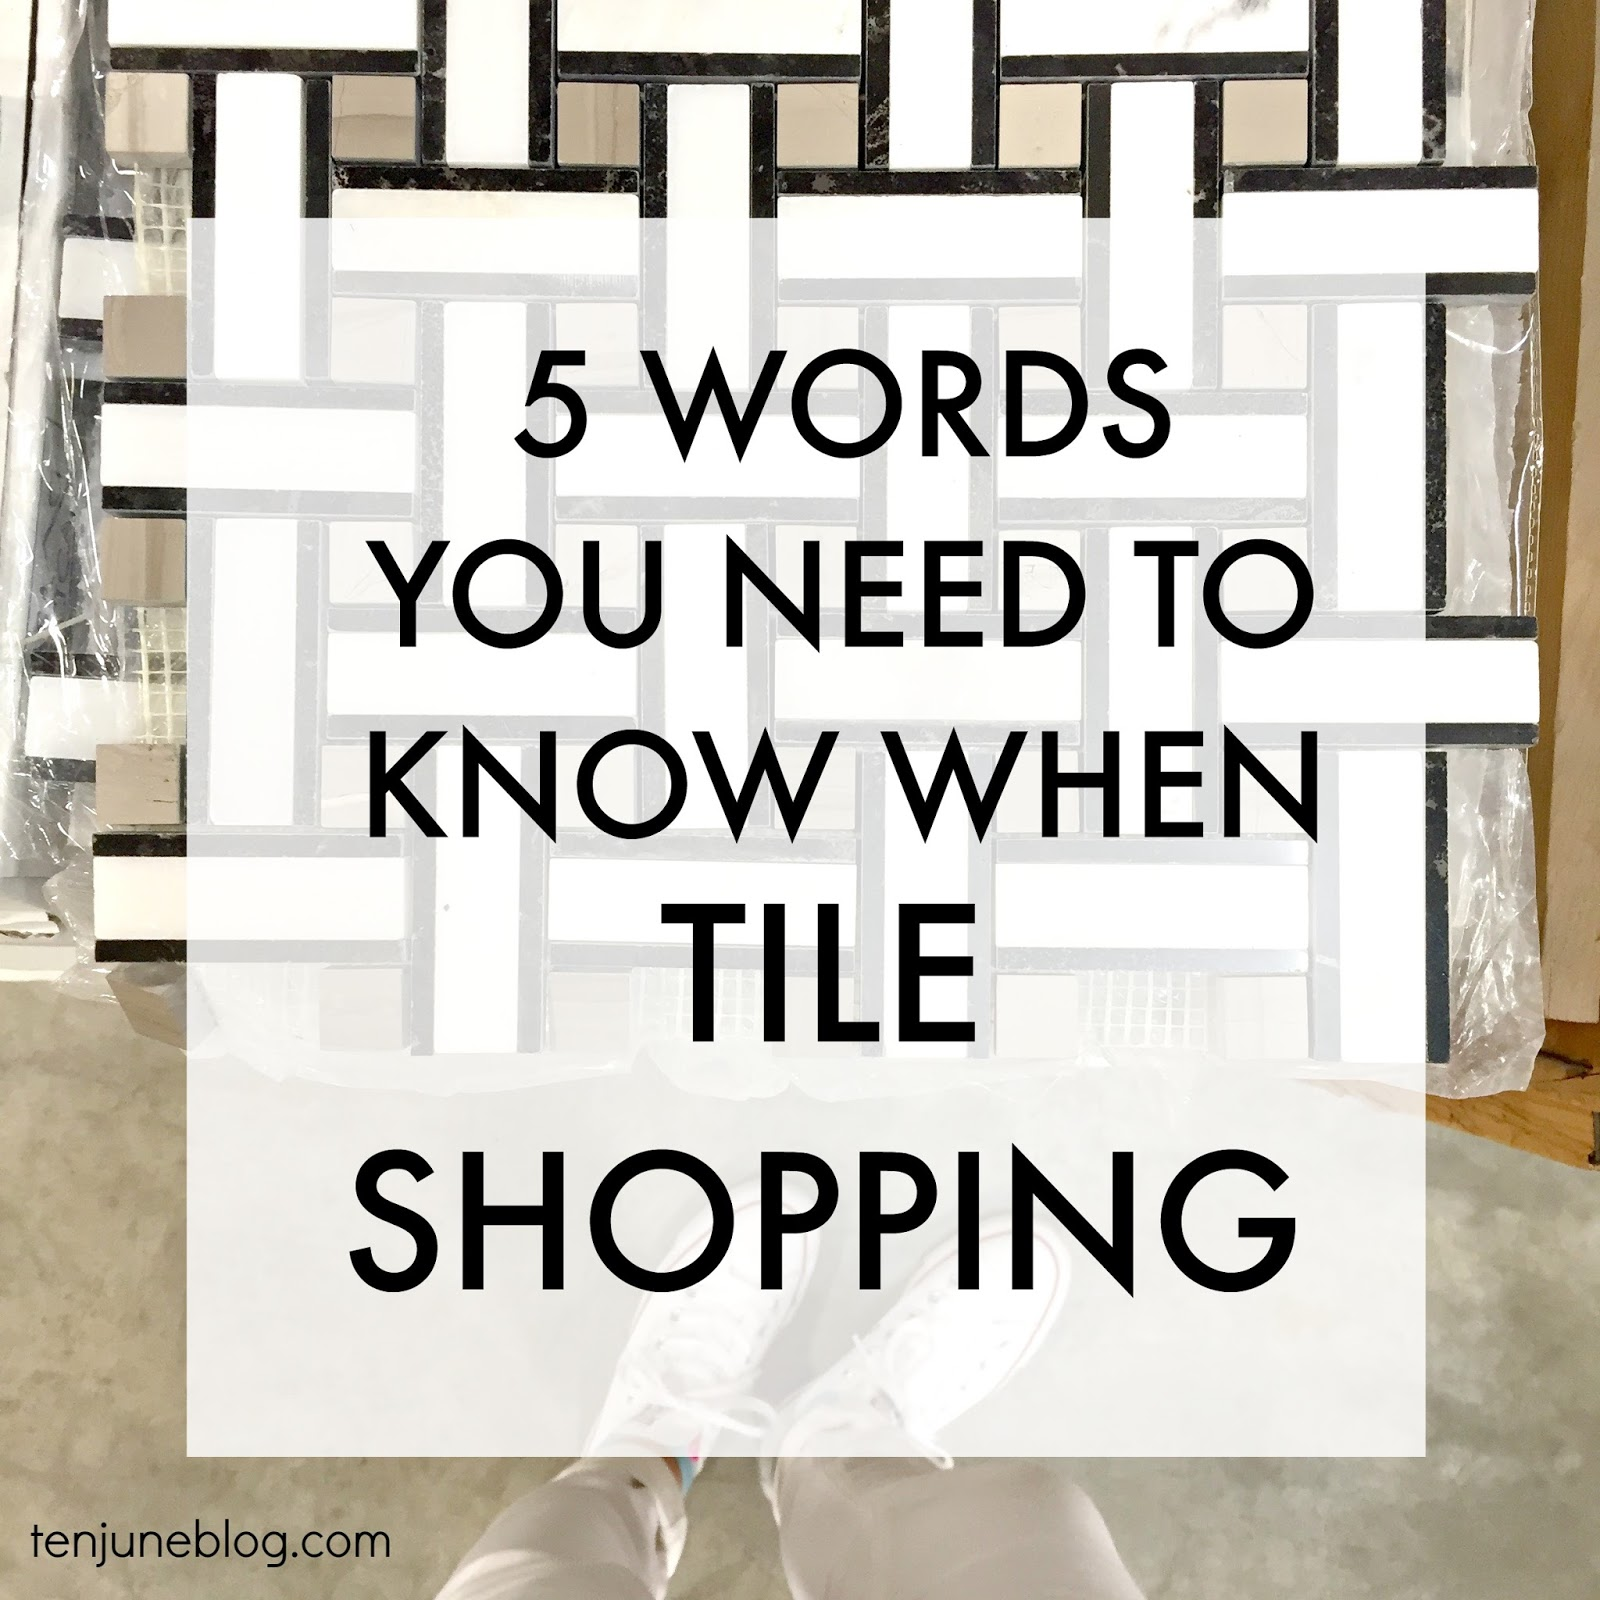 Ten June: 5 Words You Need to Know When Tile Shopping